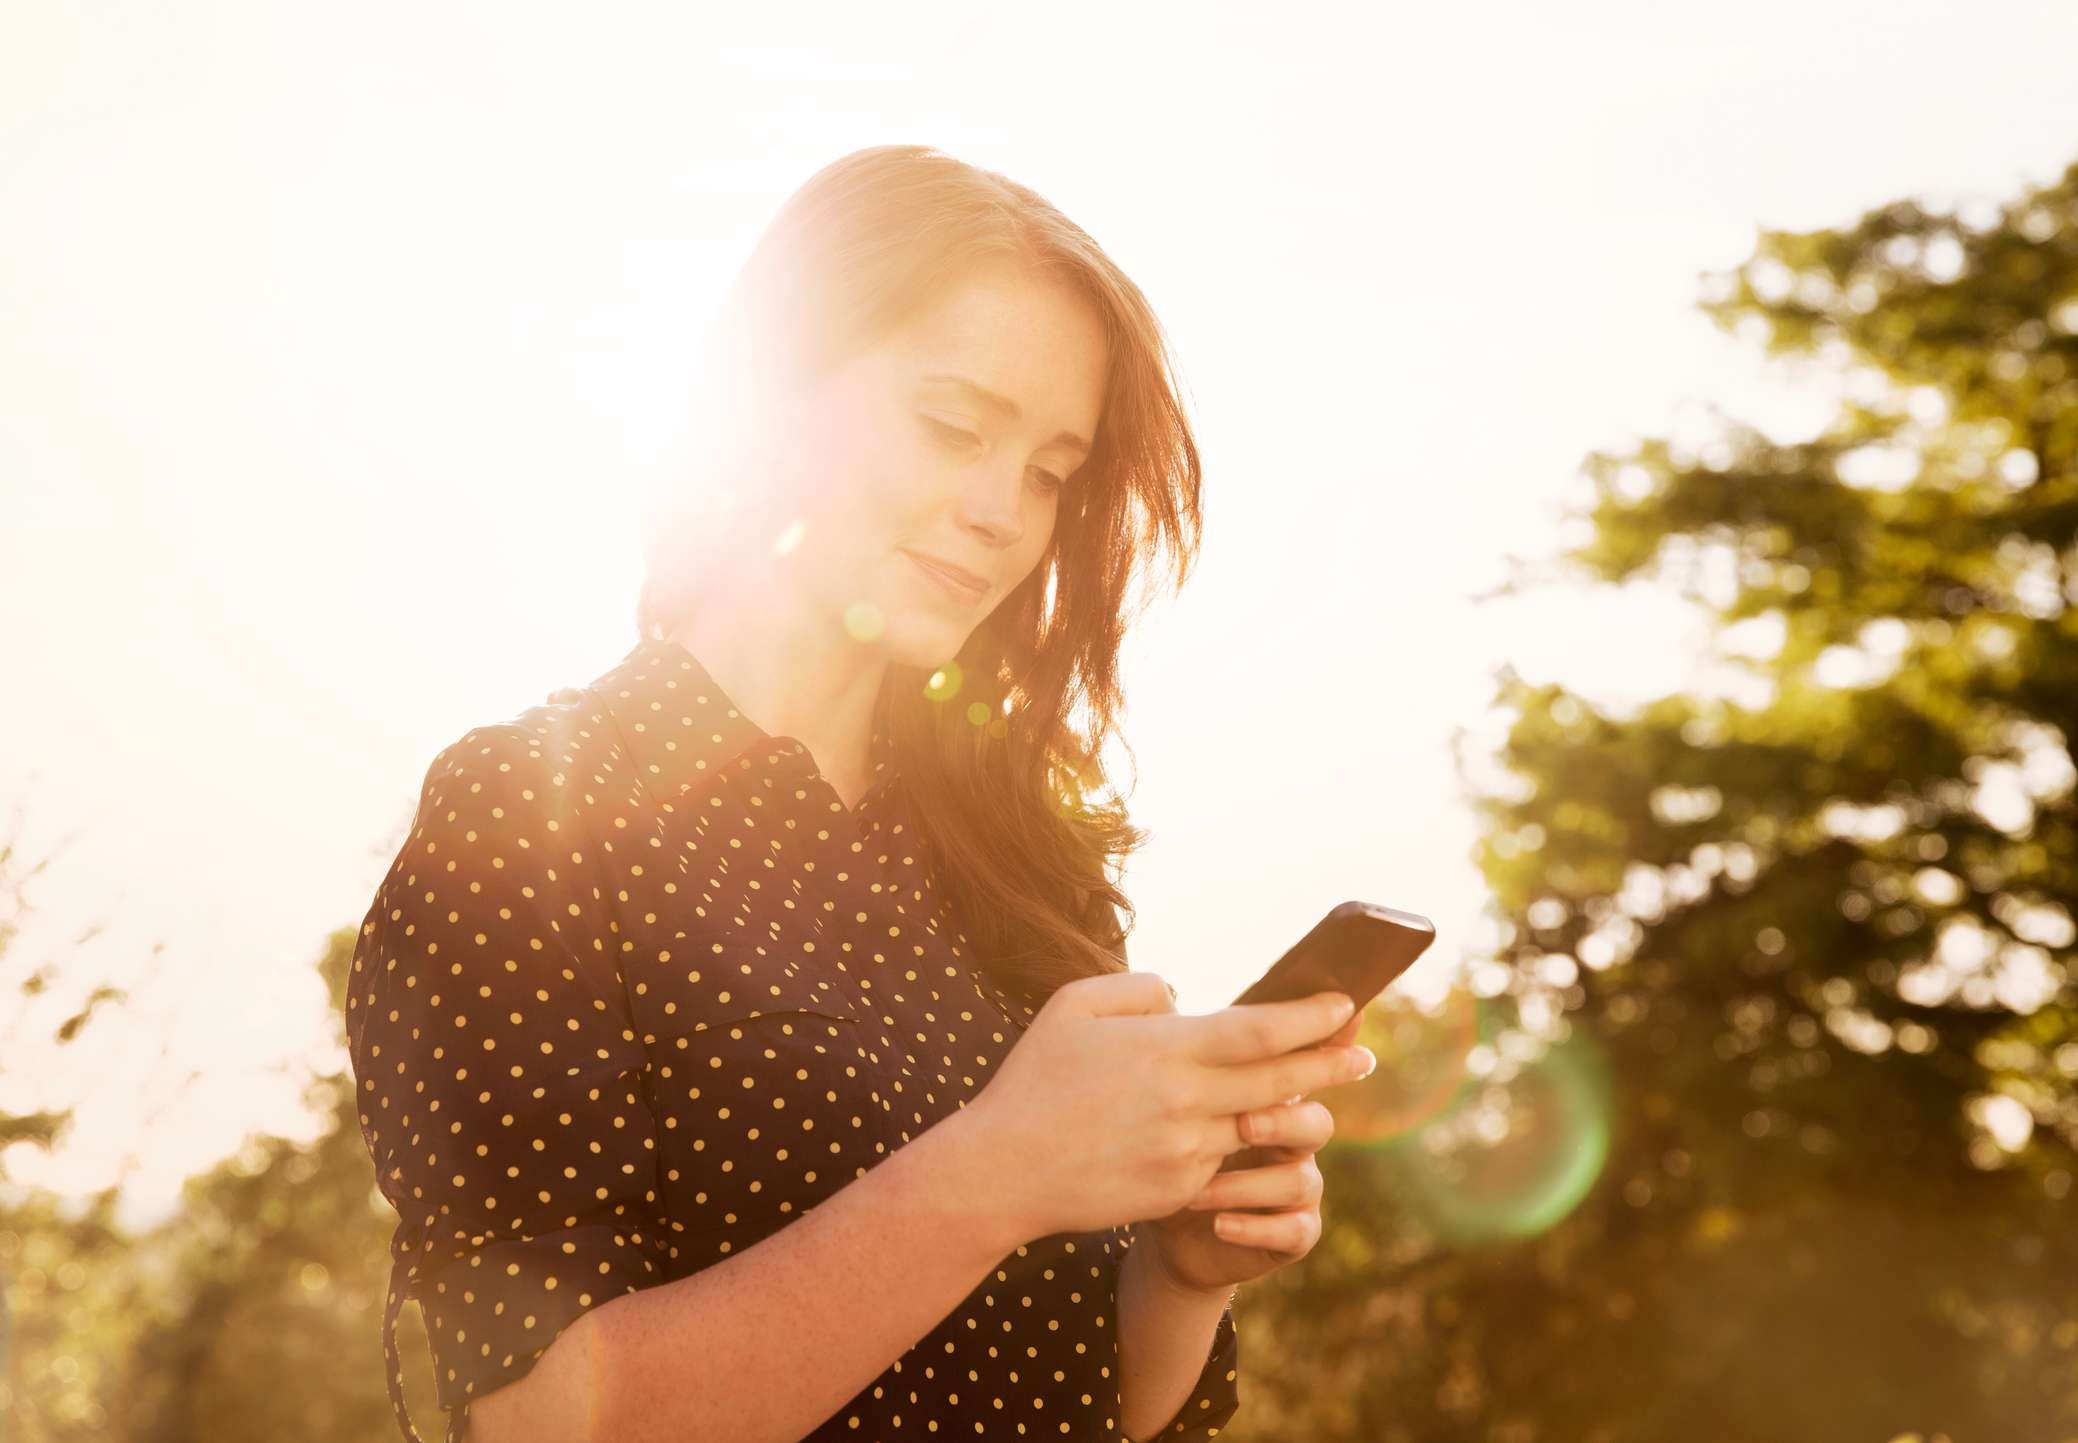 Someone using a smart phone with a bright sun behind them.